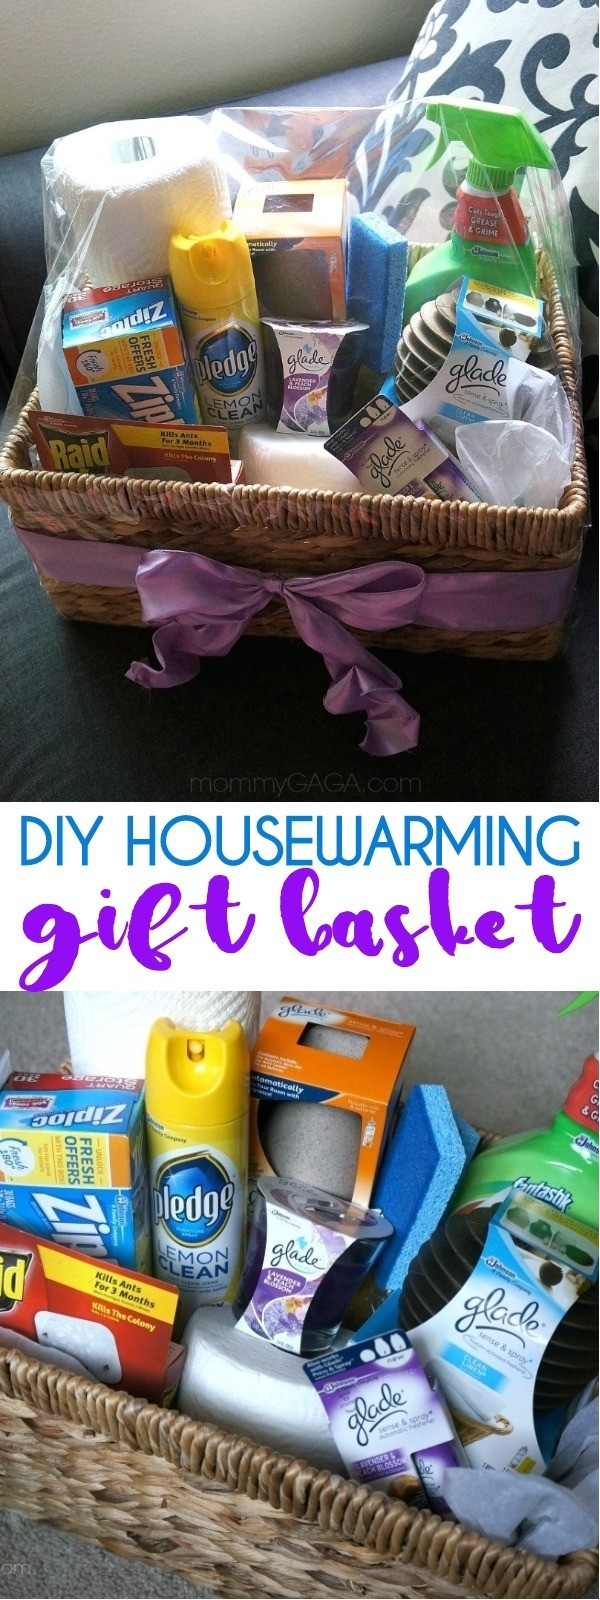 DIY Housewarming Gift Basket - A New Home Essentials Gift